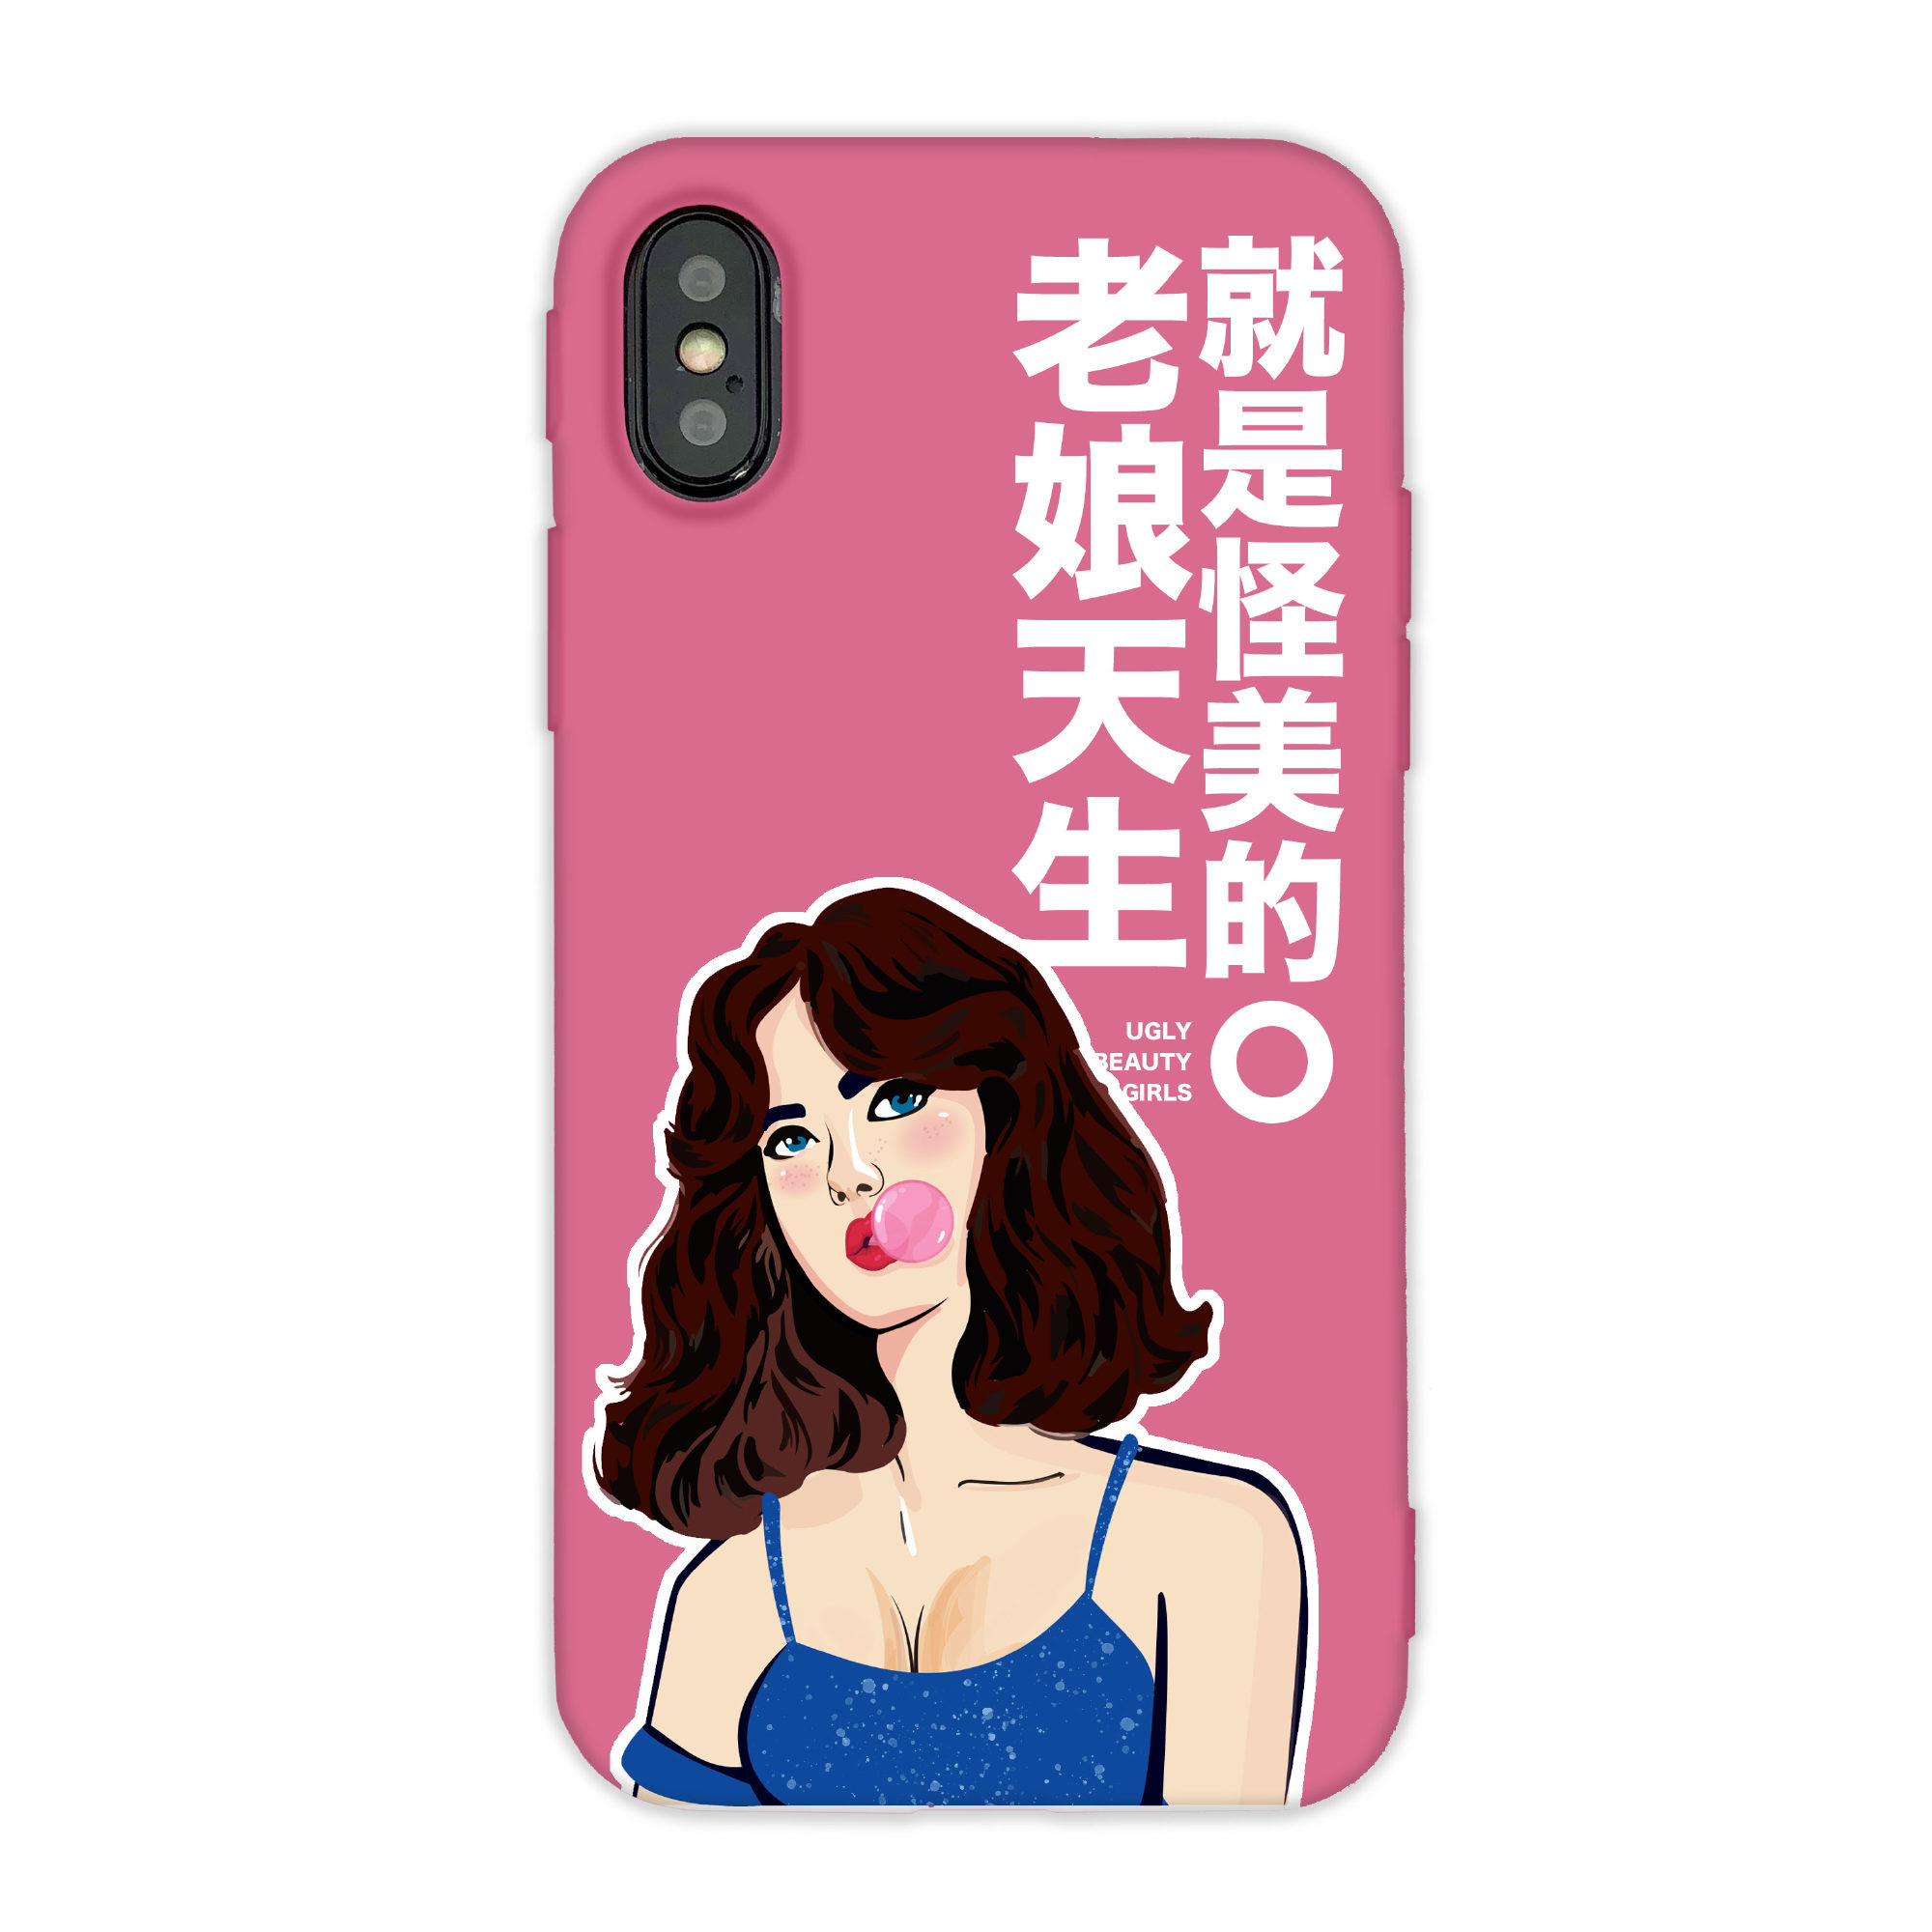 老娘怪美的UglyBeauty iPhone手機殼